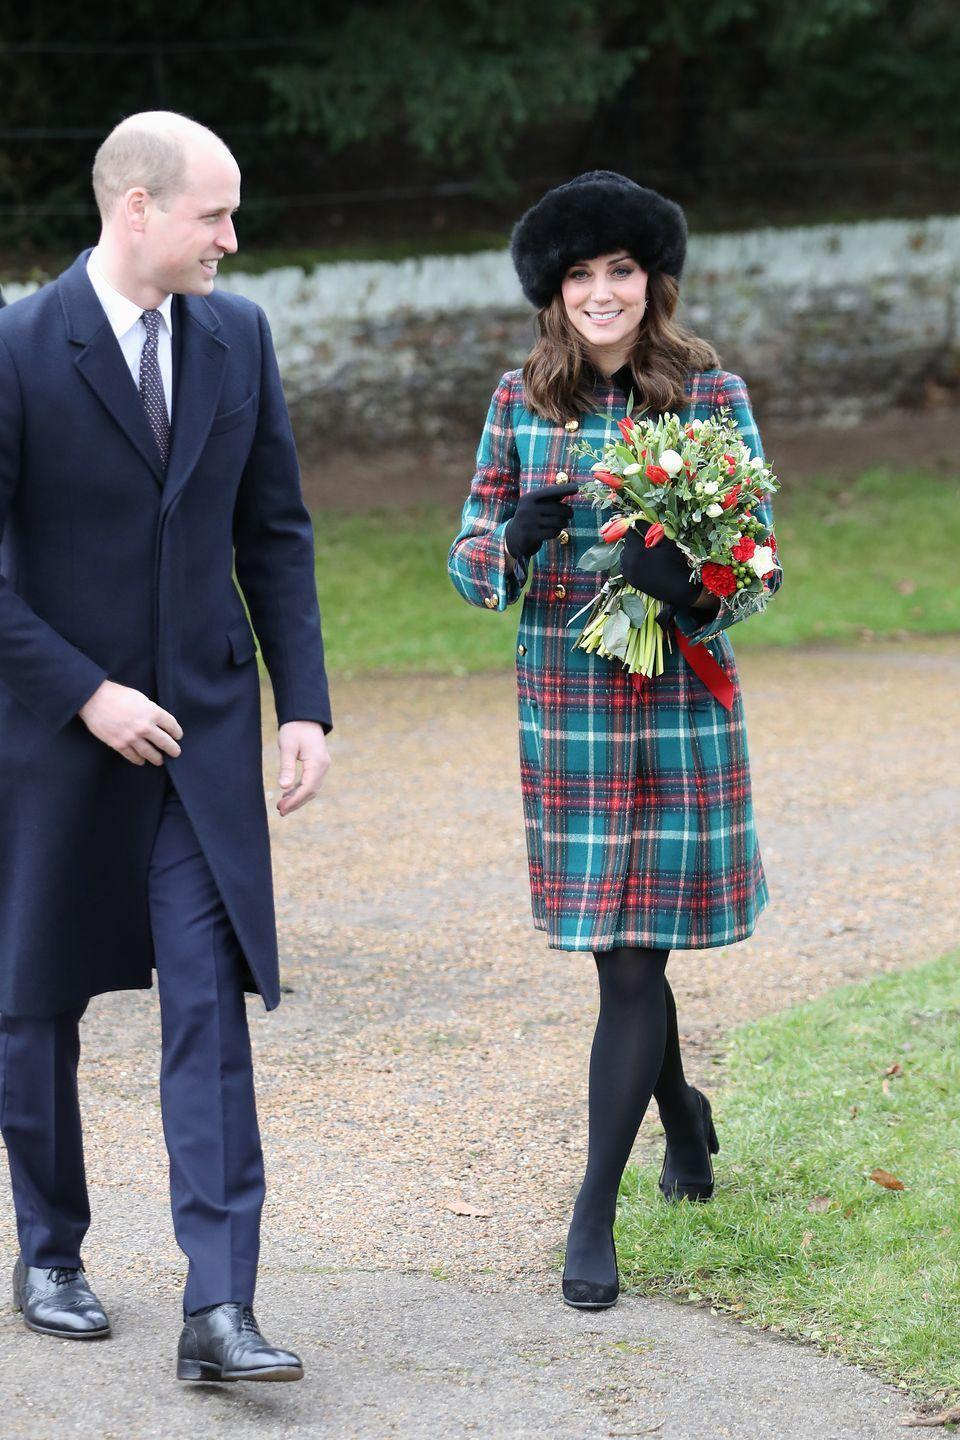 """<p>The Duchess wore a festive tartan peacoat by Miu Miu <a href=""""https://www.townandcountrymag.com/society/tradition/g14465780/royal-family-meghan-markle-christmas-church-photos-2017/"""" rel=""""nofollow noopener"""" target=""""_blank"""" data-ylk=""""slk:on Christmas day in 2017"""" class=""""link rapid-noclick-resp"""">on Christmas day in 2017</a> as she attended mass with the rest of the royal family. </p>"""